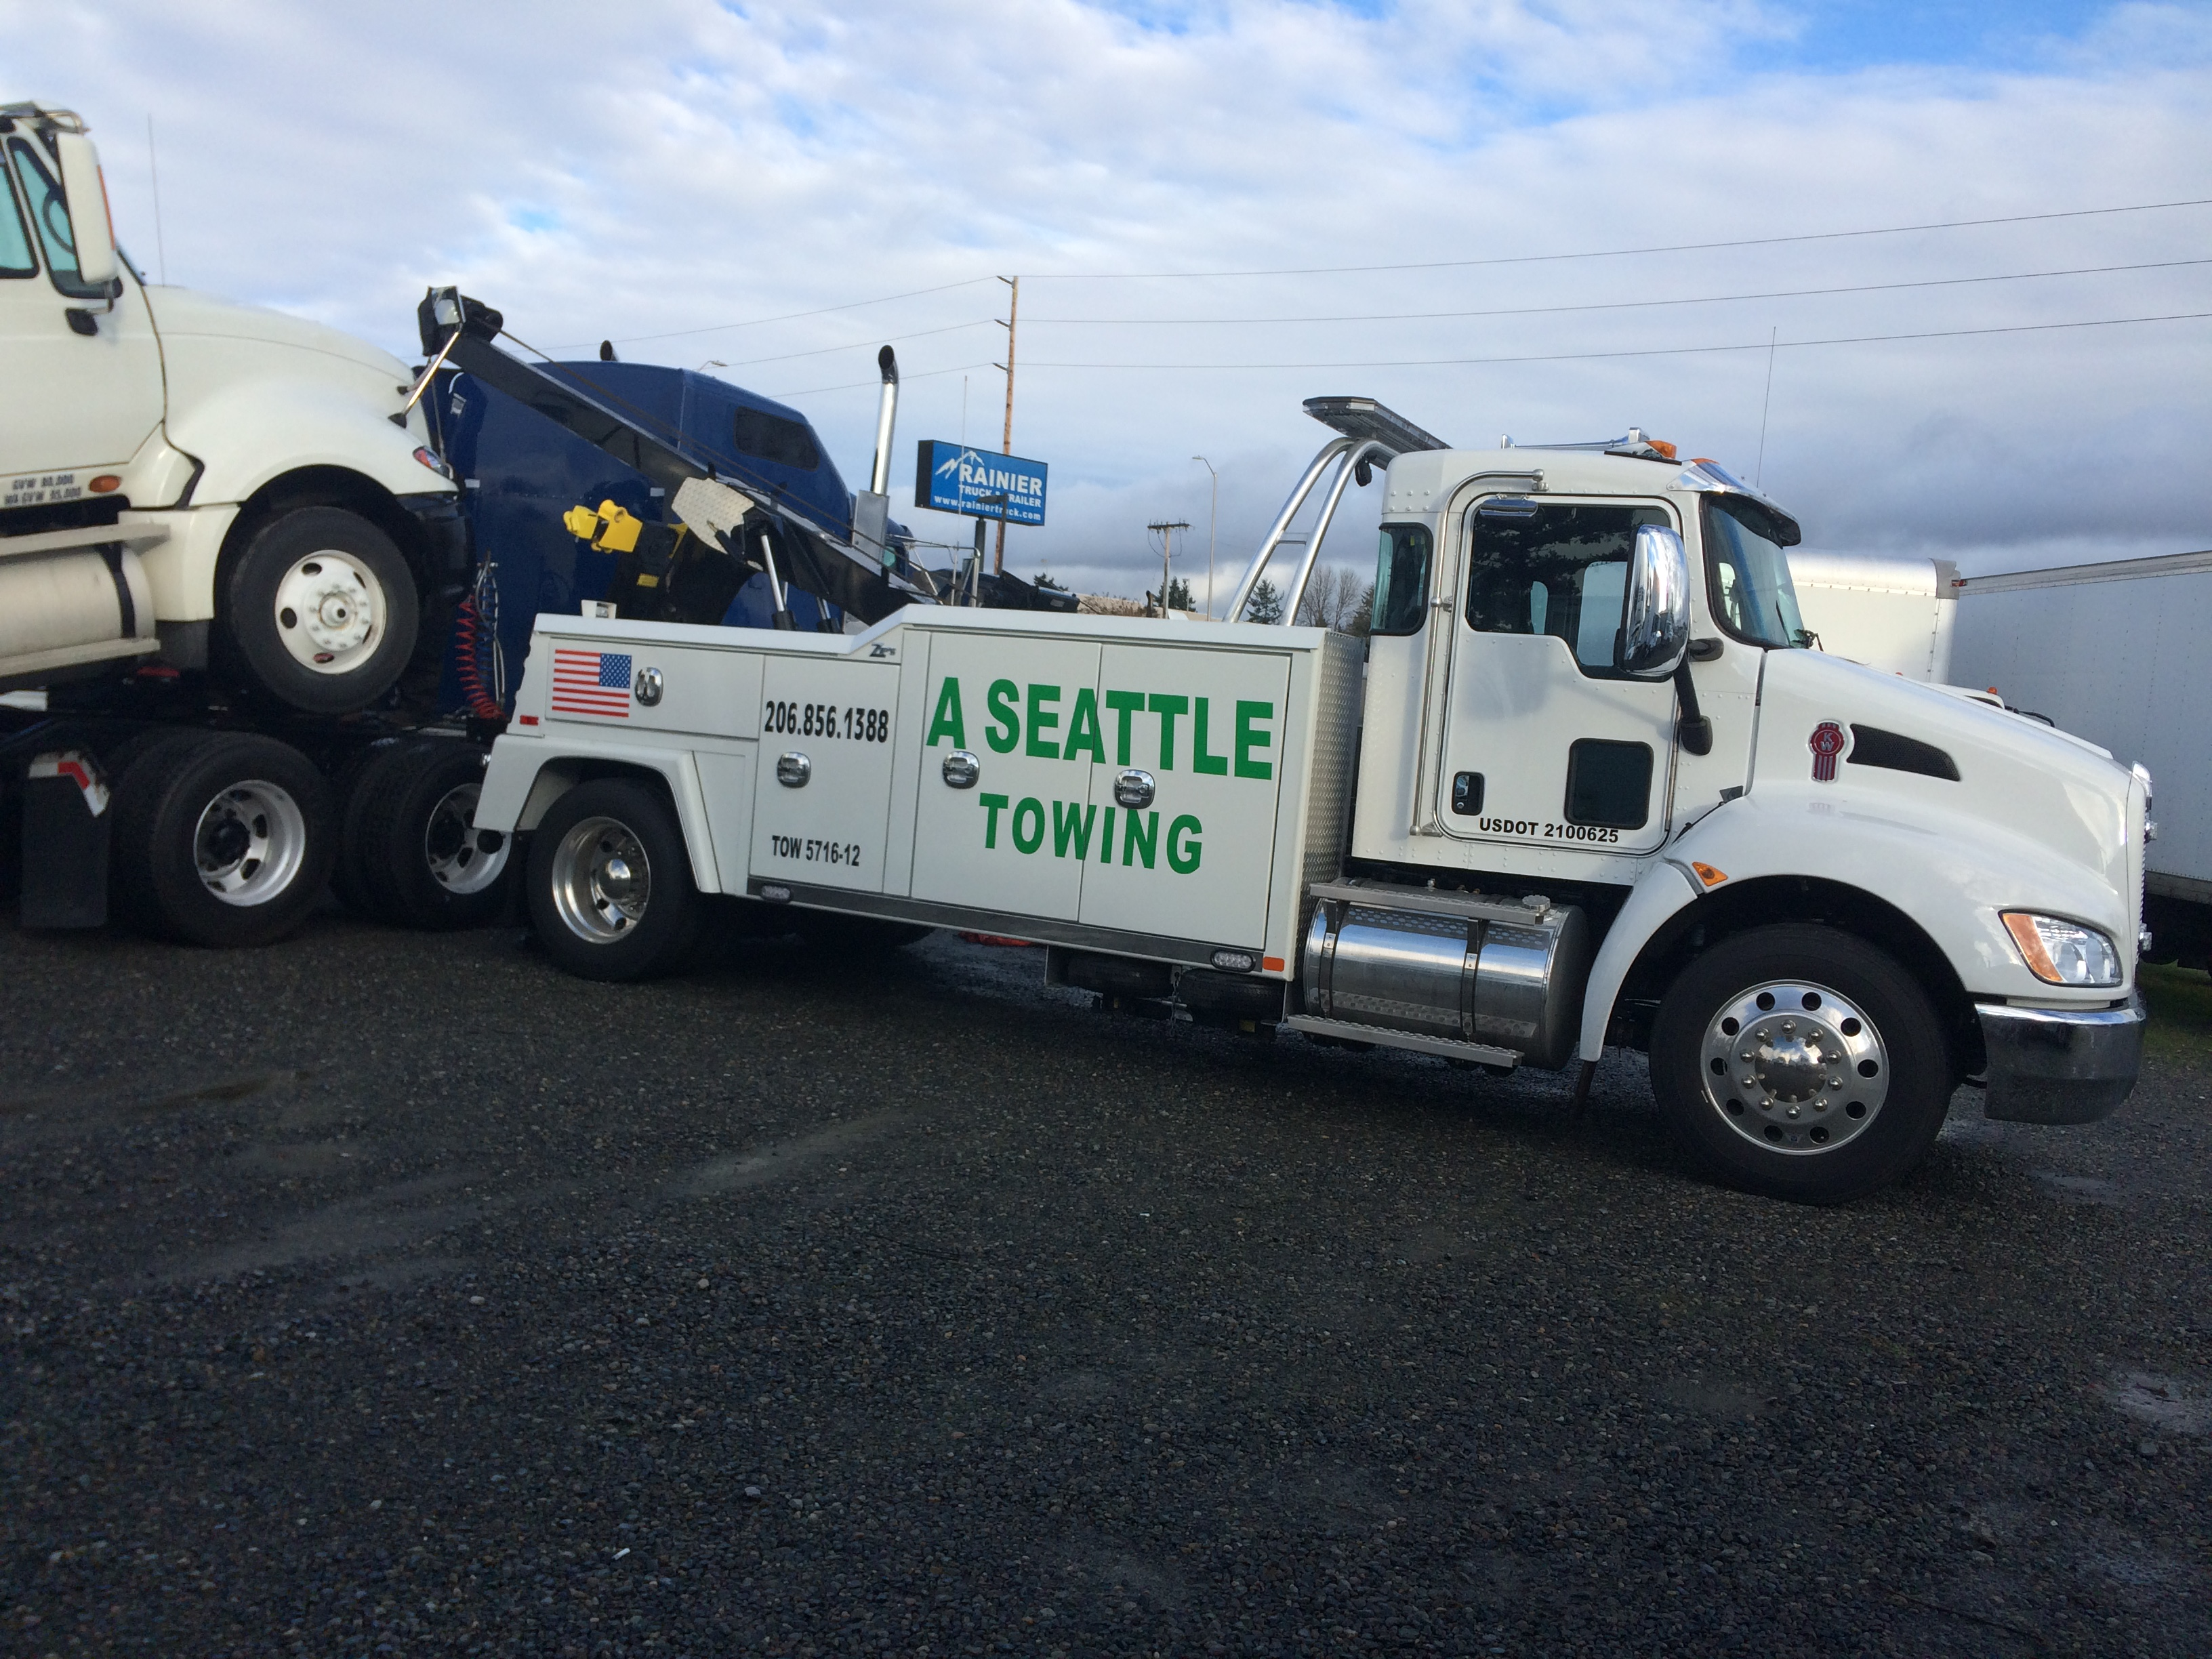 A Seattle Towing (38)